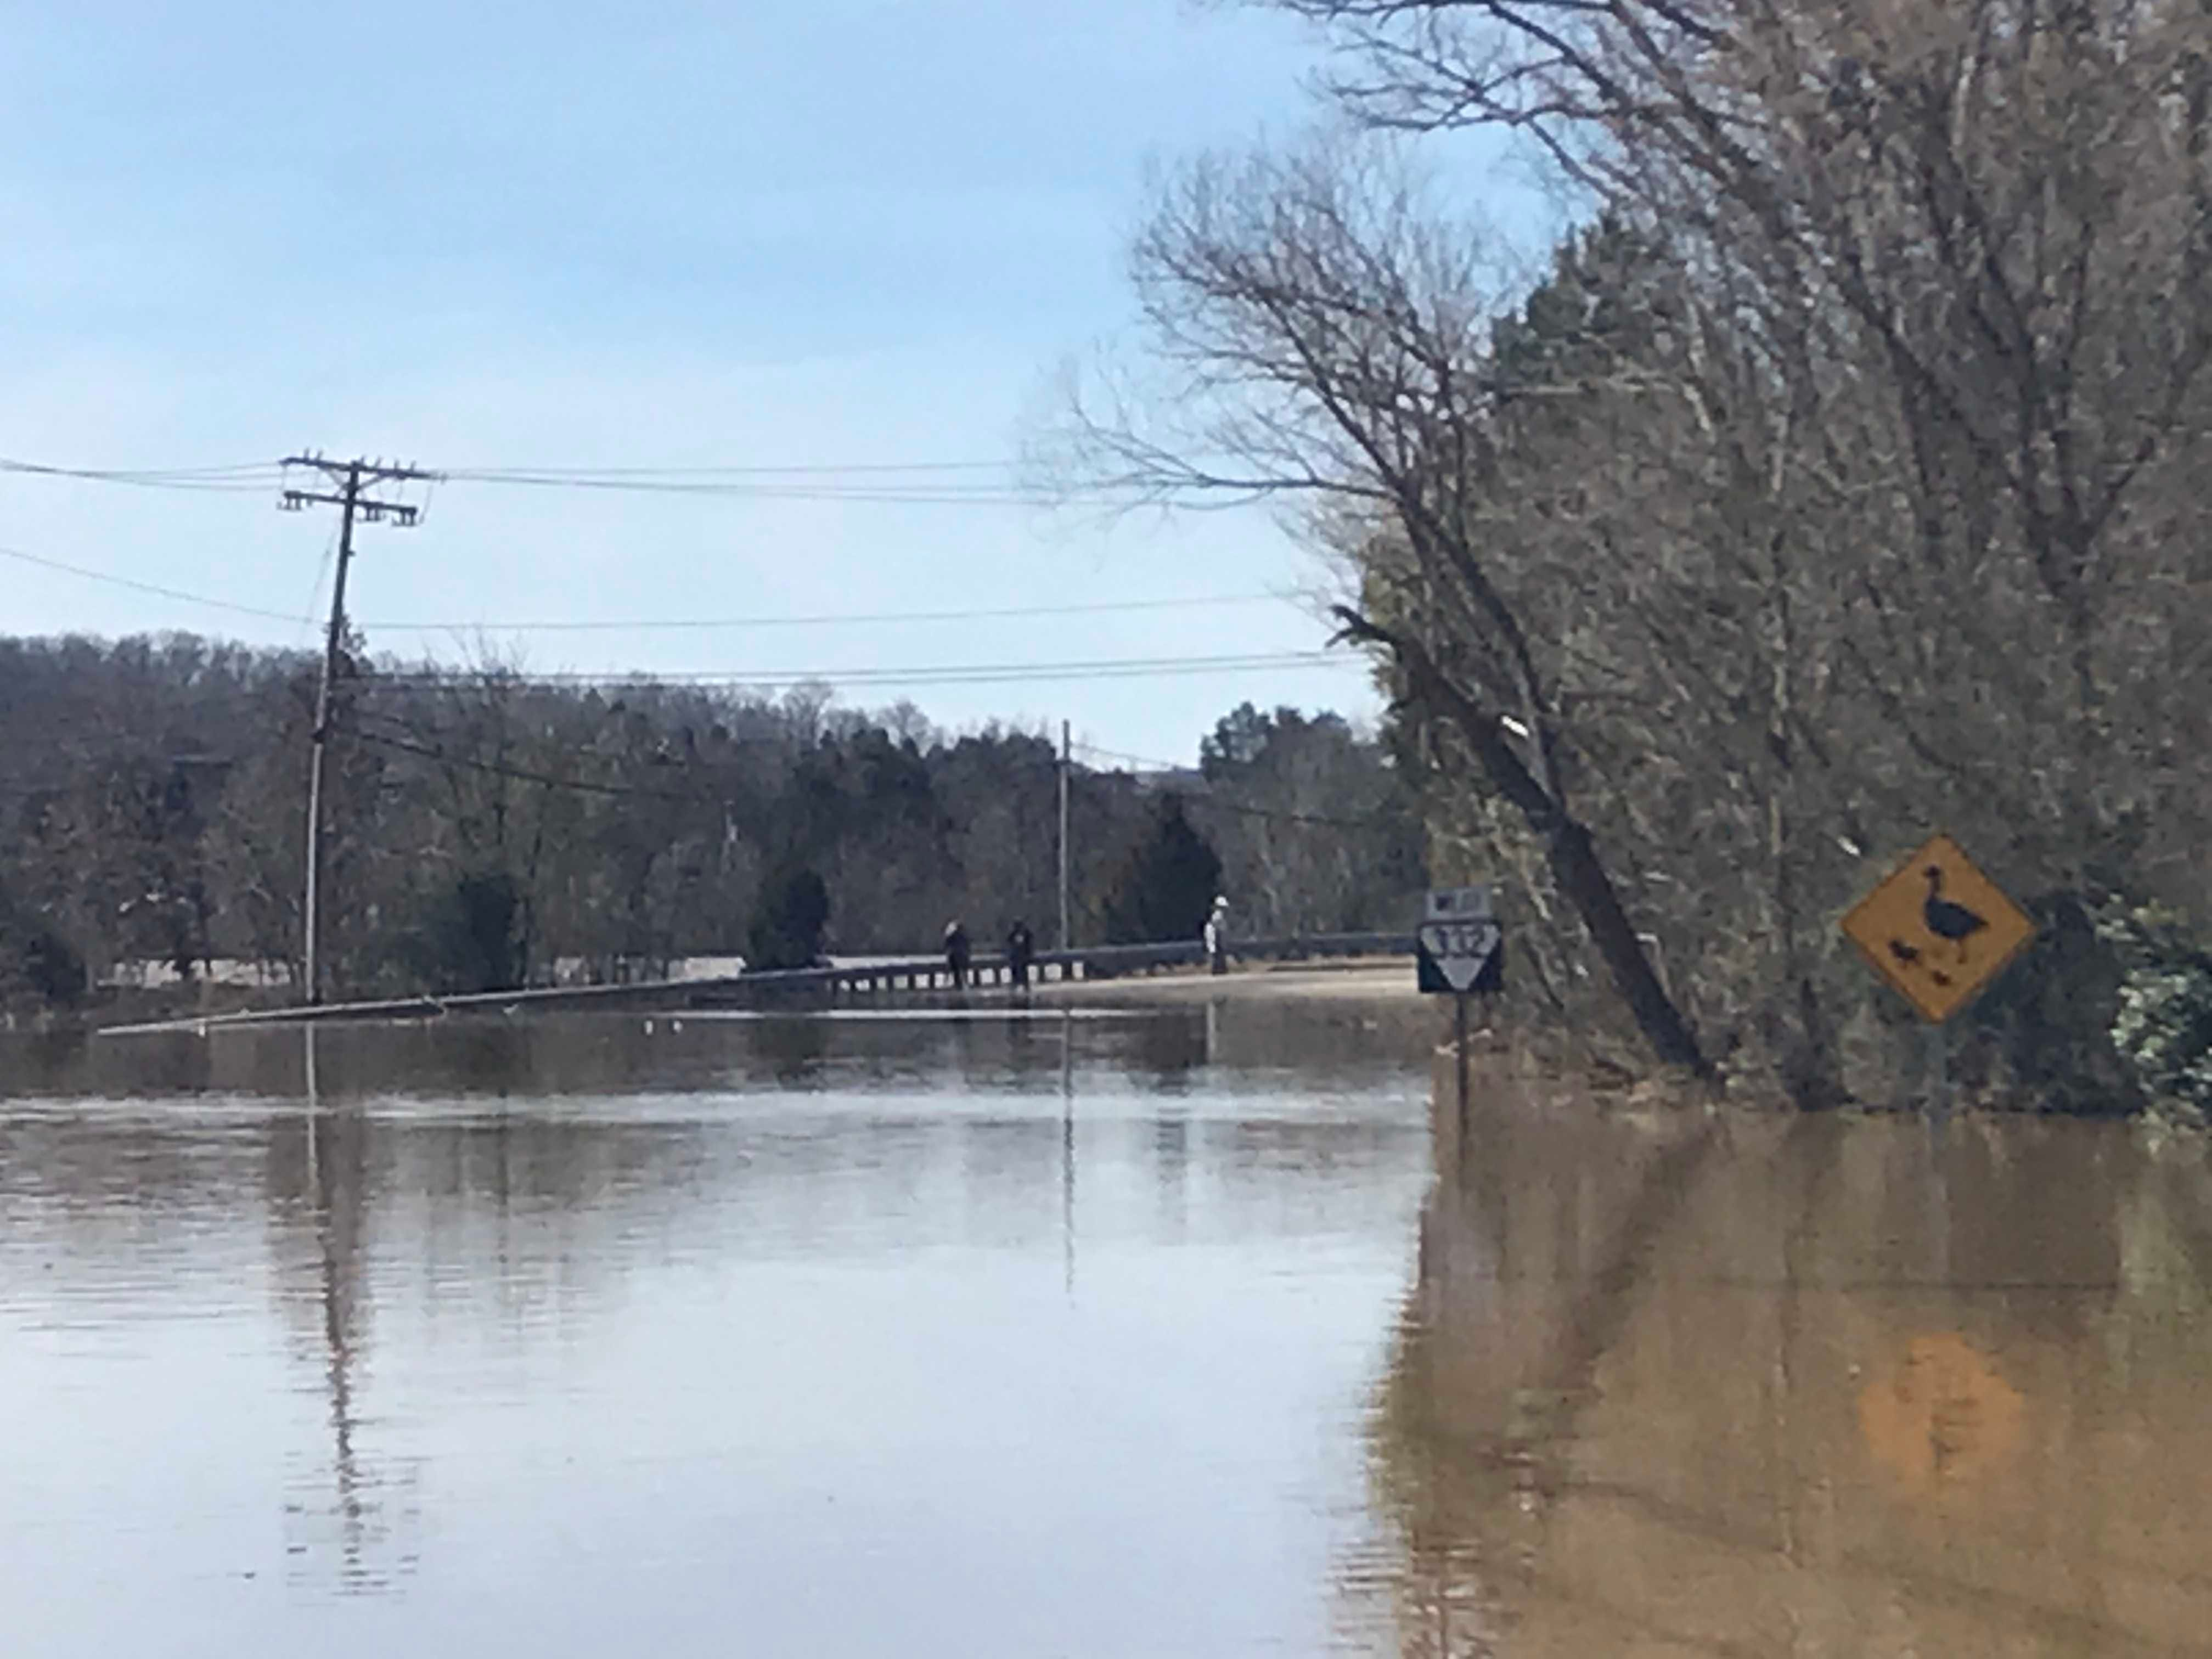 By noon on Monday, Feb. 25, 2019 some of the water in Northshore Drive east of Ebenezer had receded to actually see an edge of dry land across the pond.